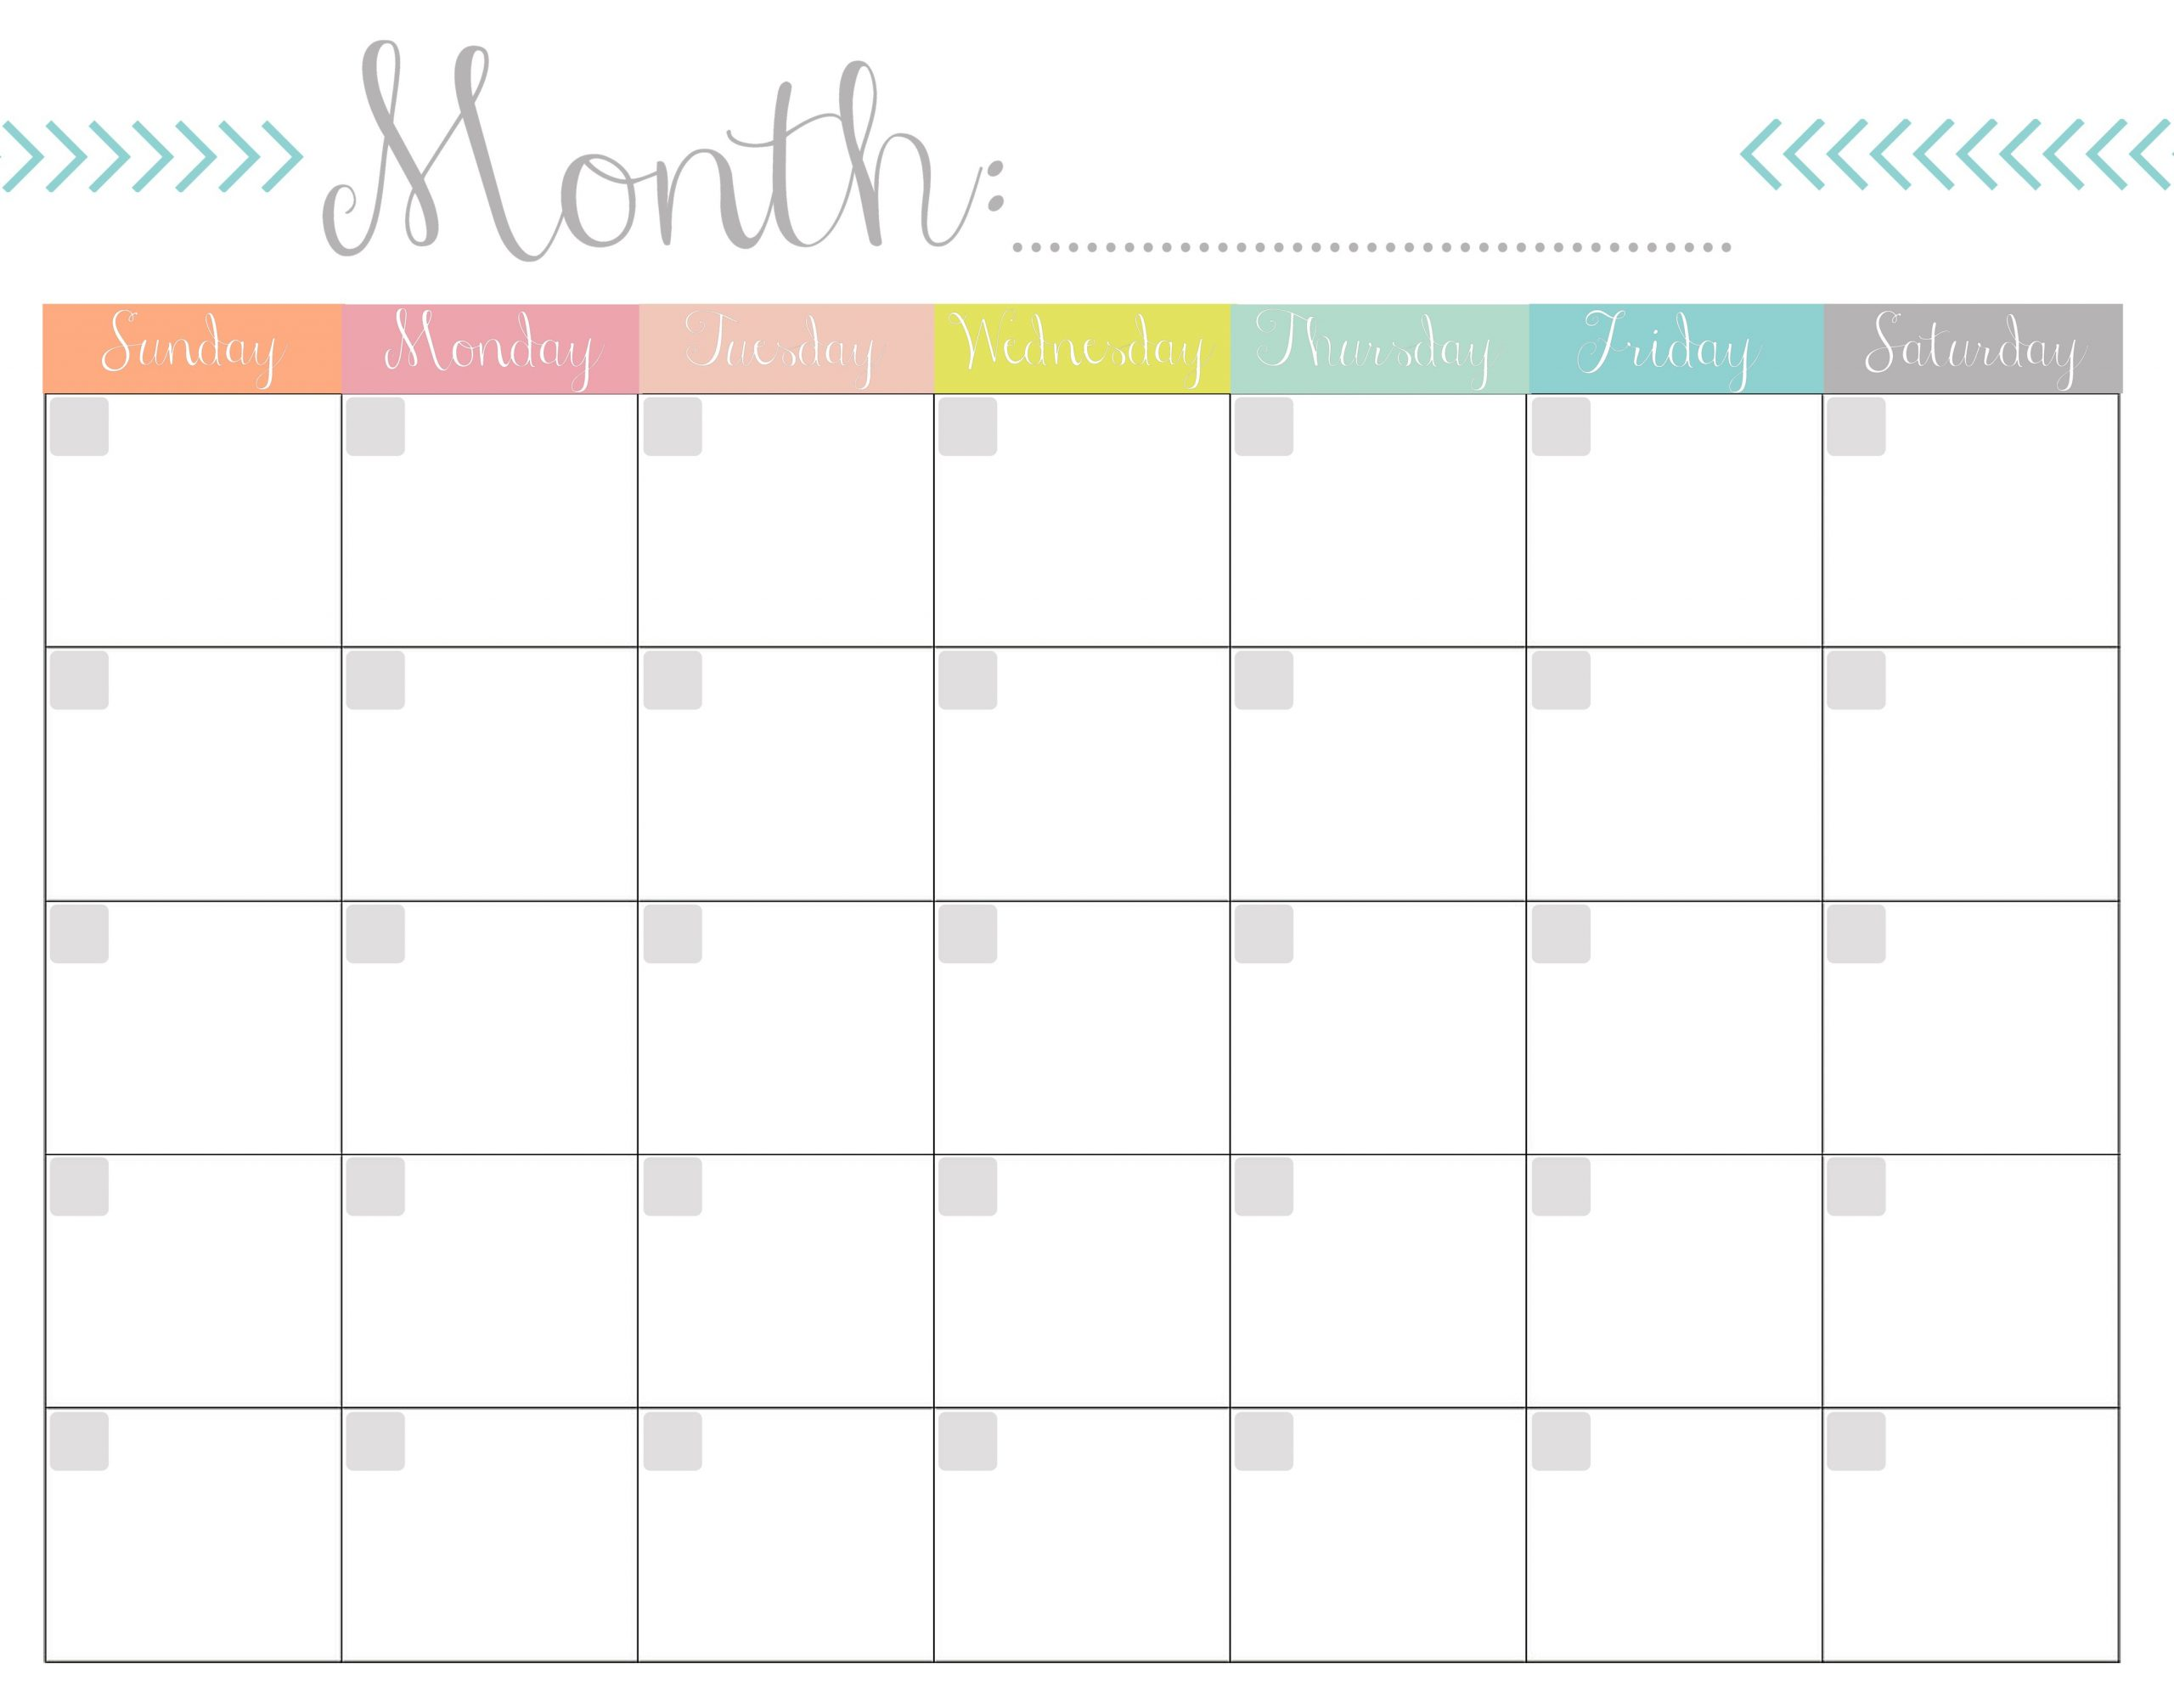 Importance Of Pre-Booking – Phoenix, A Salon Calendars To Fill In And Print For Free